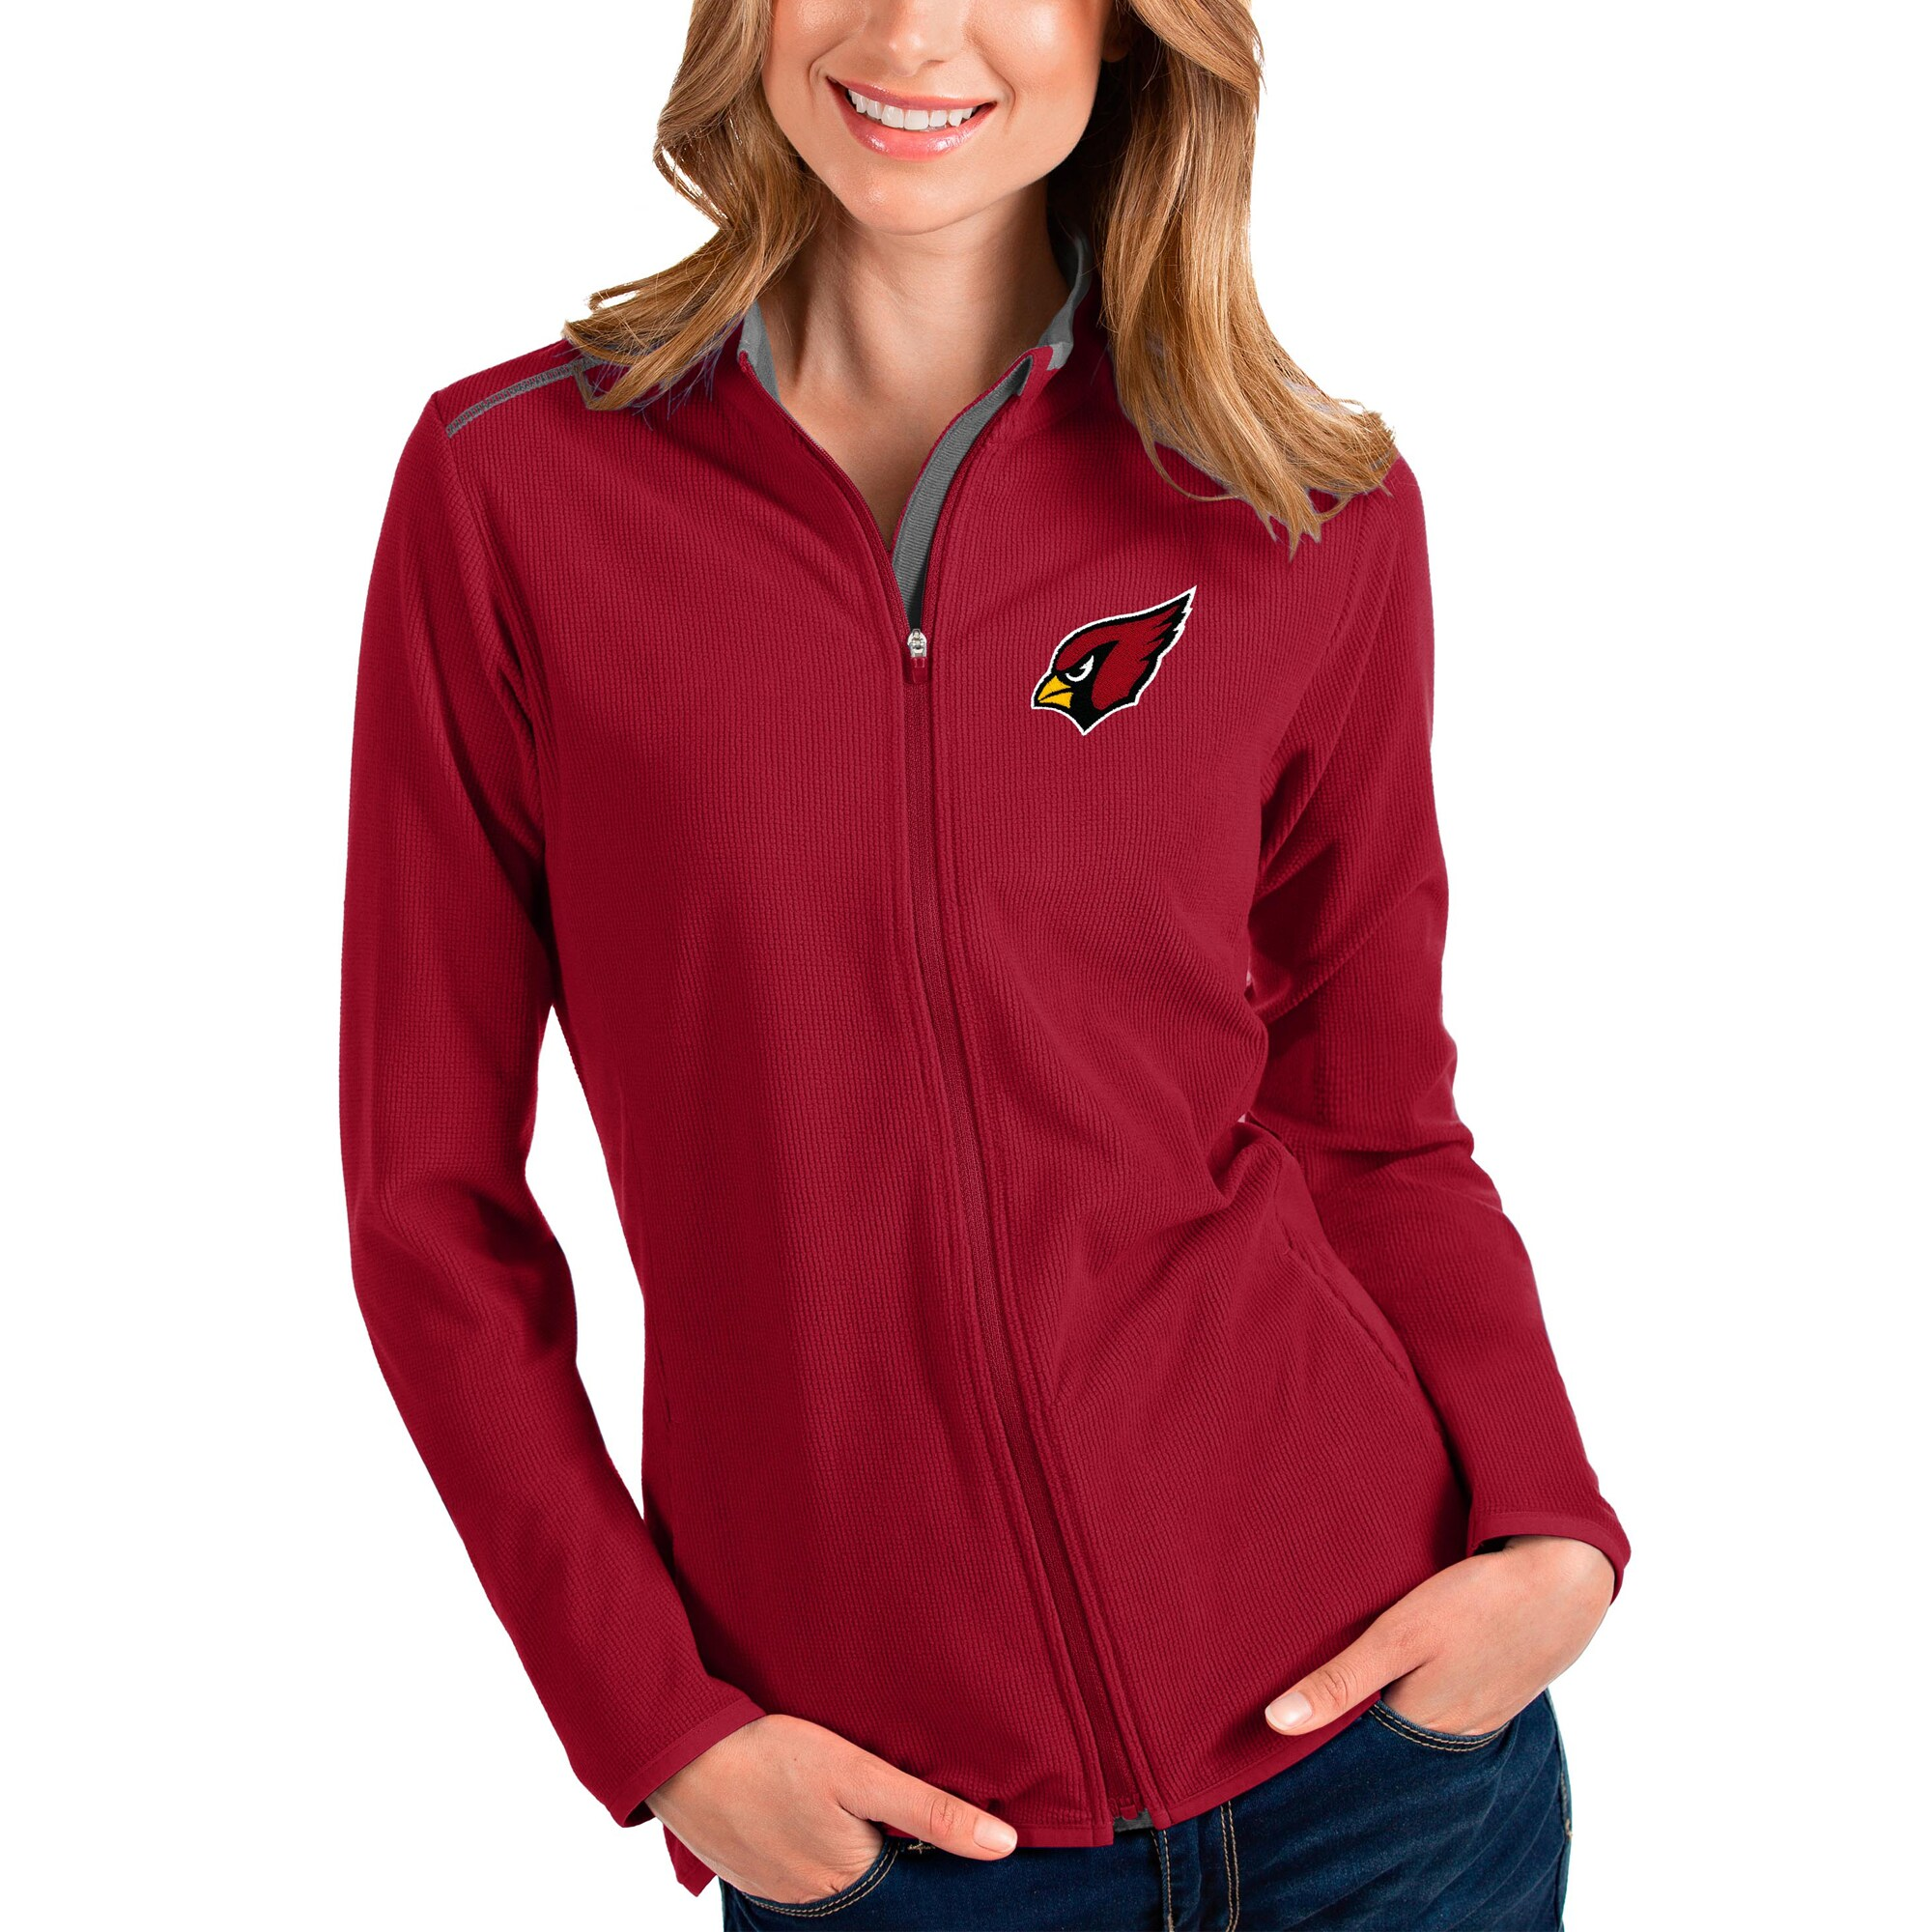 Arizona Cardinals Antigua Women's Glacier Full-Zip Jacket - Cardinal